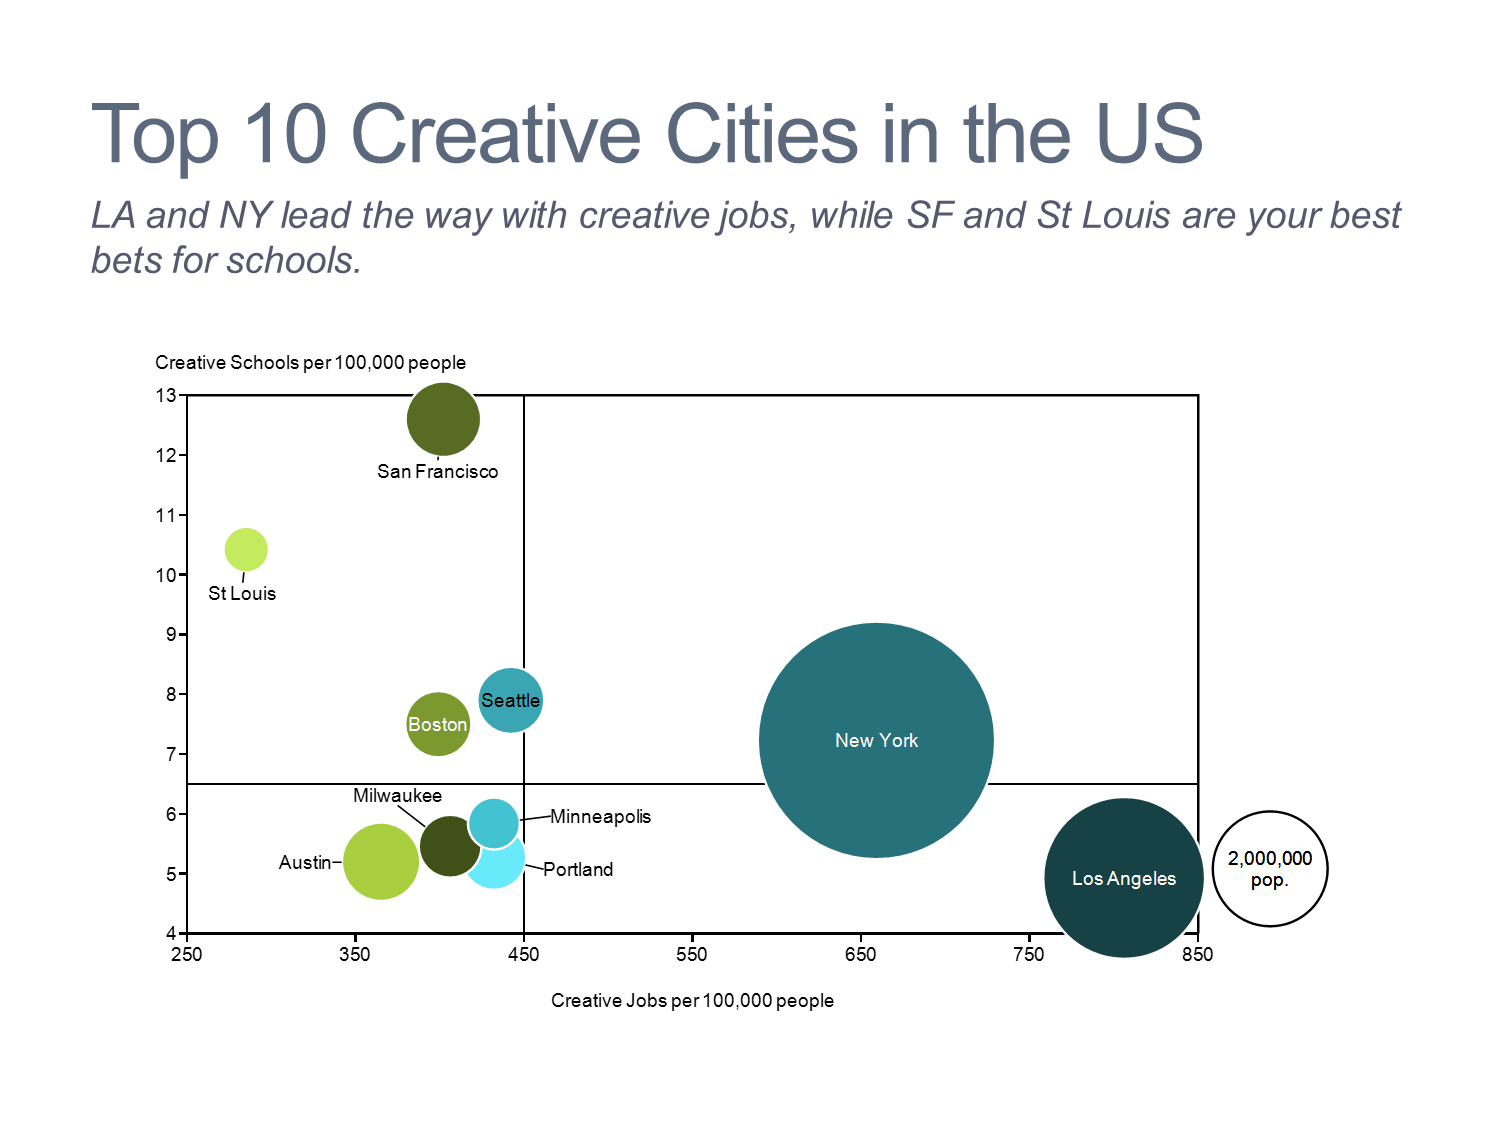 Top 10 Creative Cities in the U.S. Bubble Chart